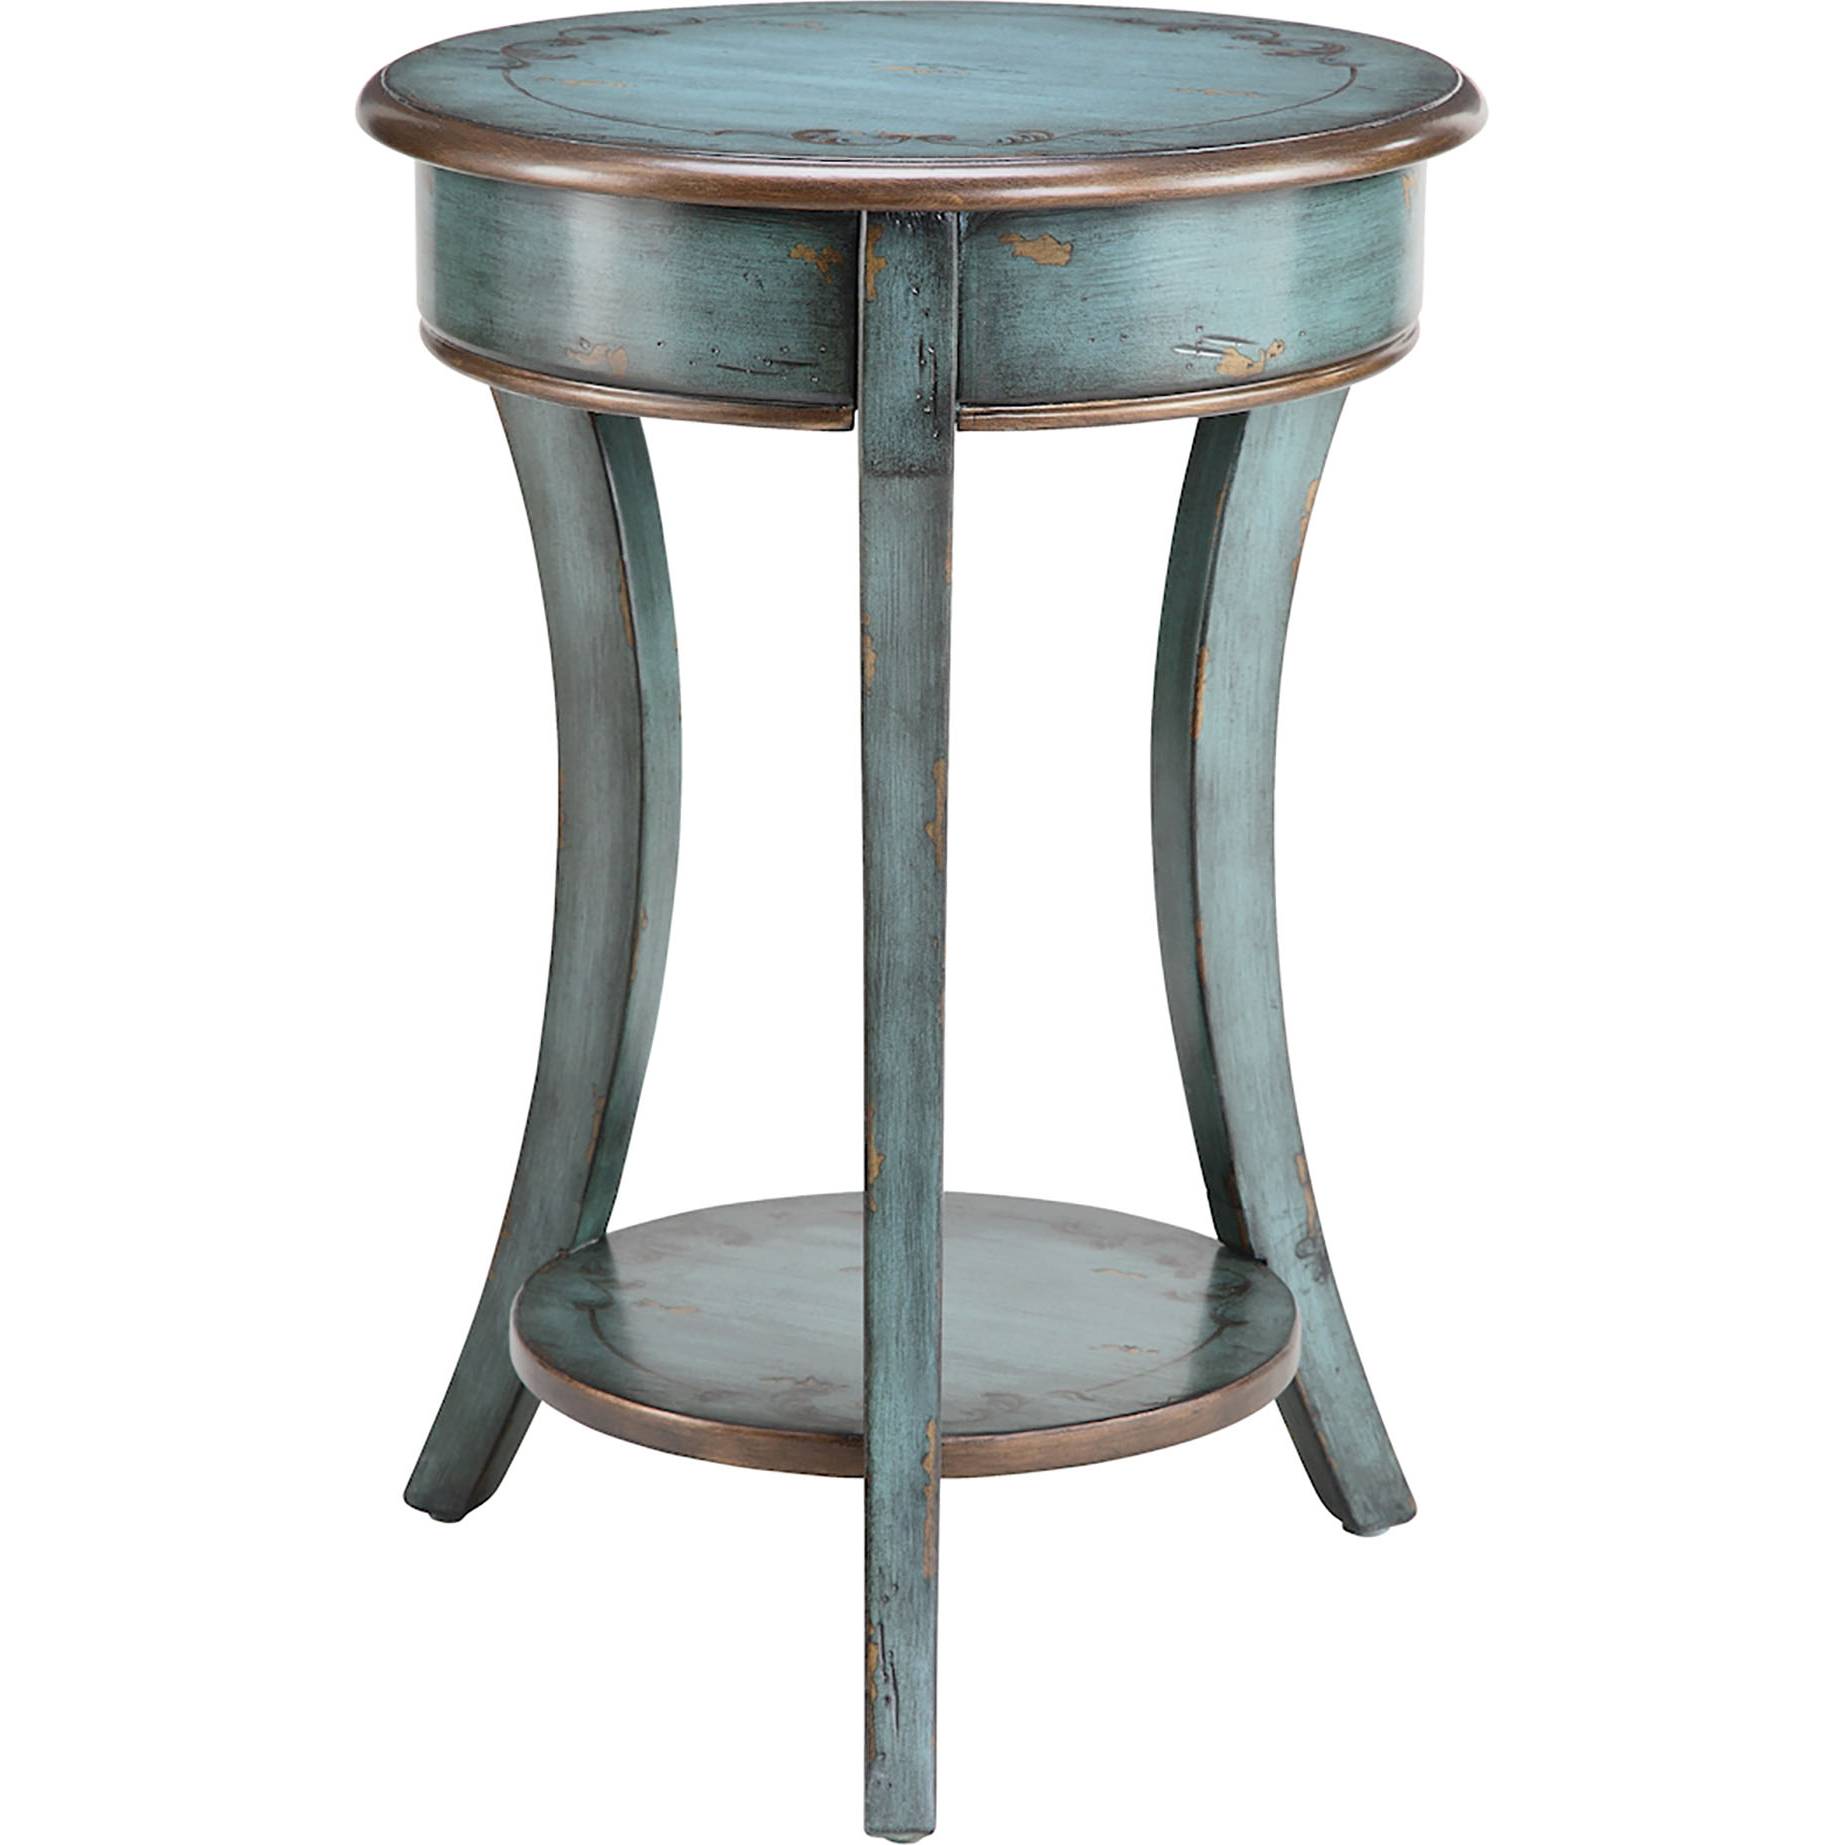 Charmant Stein World Painted Treasures End Table